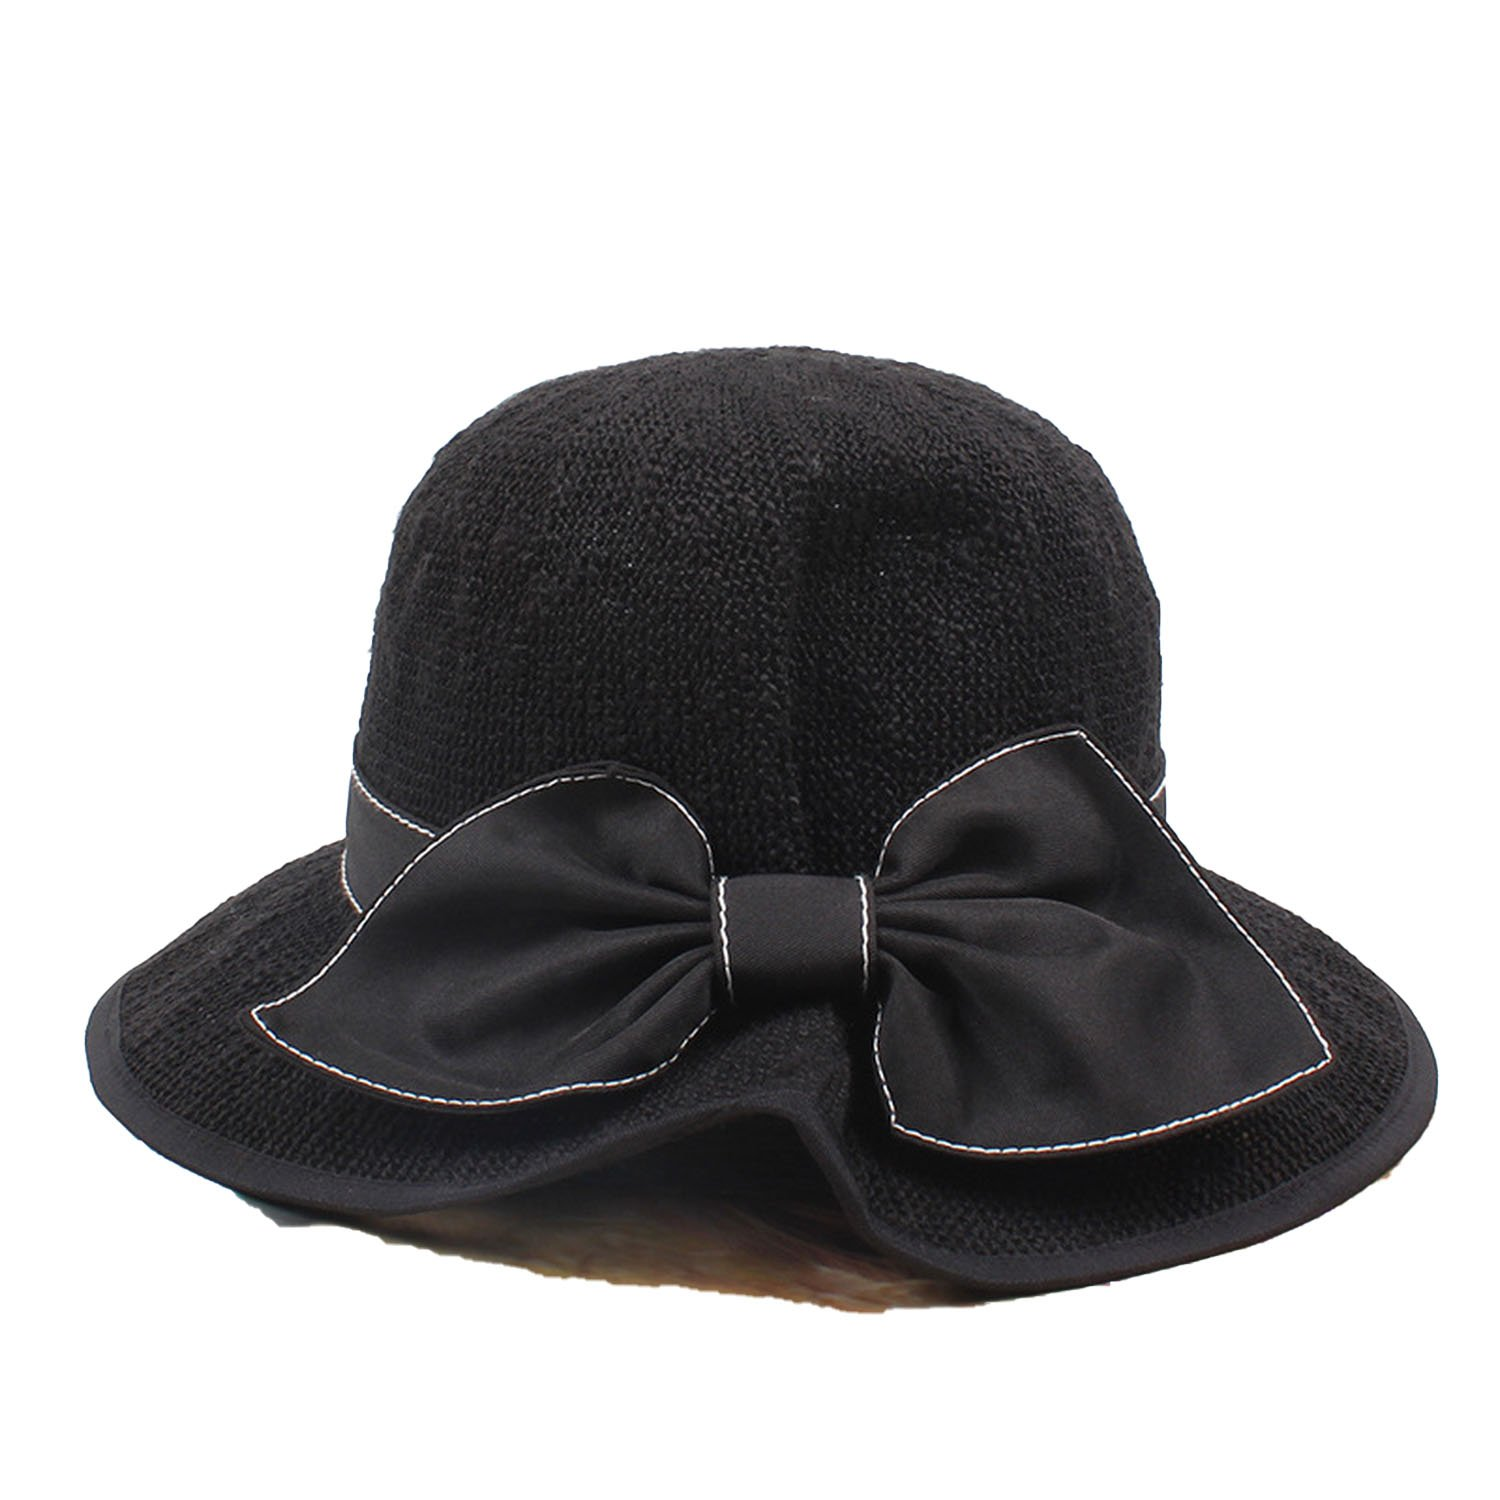 747690beff5af3 Attack infant-and-toddler-hats Hat Temperament Elegant Bow Fisherman Hat  Small Fresh Breathable Basin Cap, Black, at Amazon Women's Clothing store: